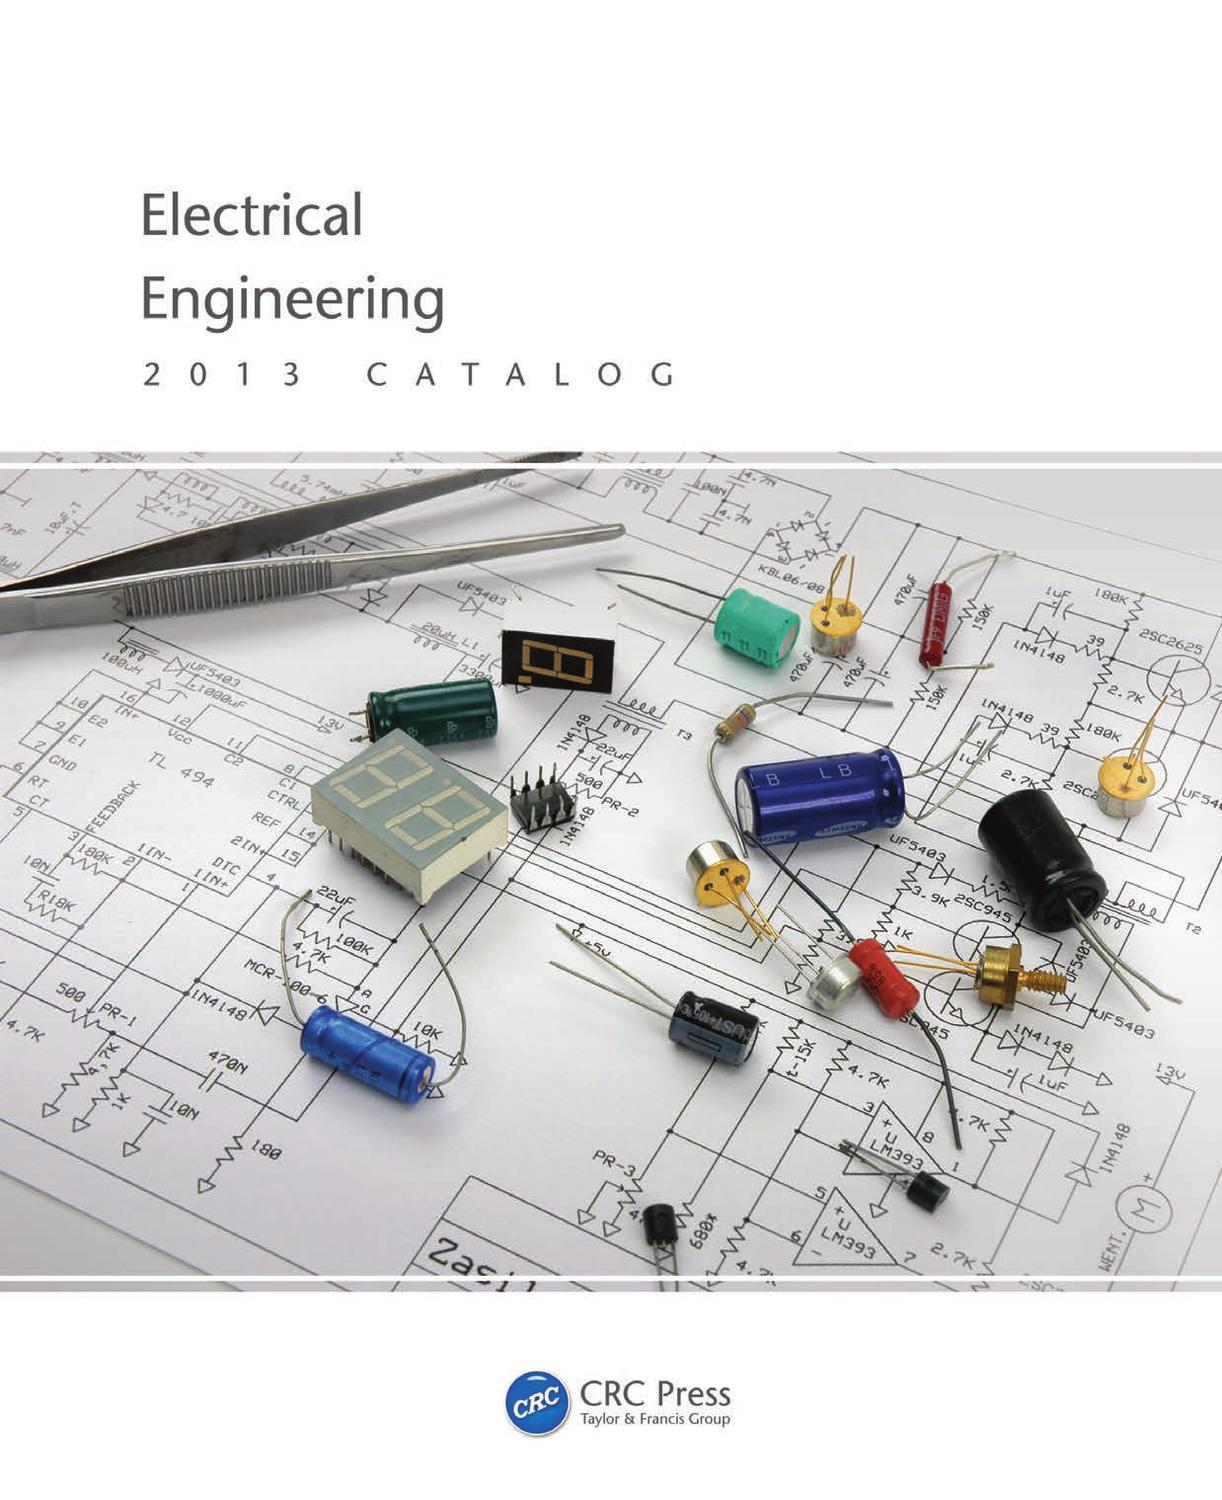 Electrical Engineering By Crc Press Issuu Pipe Electronic Ballast Circuit Diagram Basiccircuit